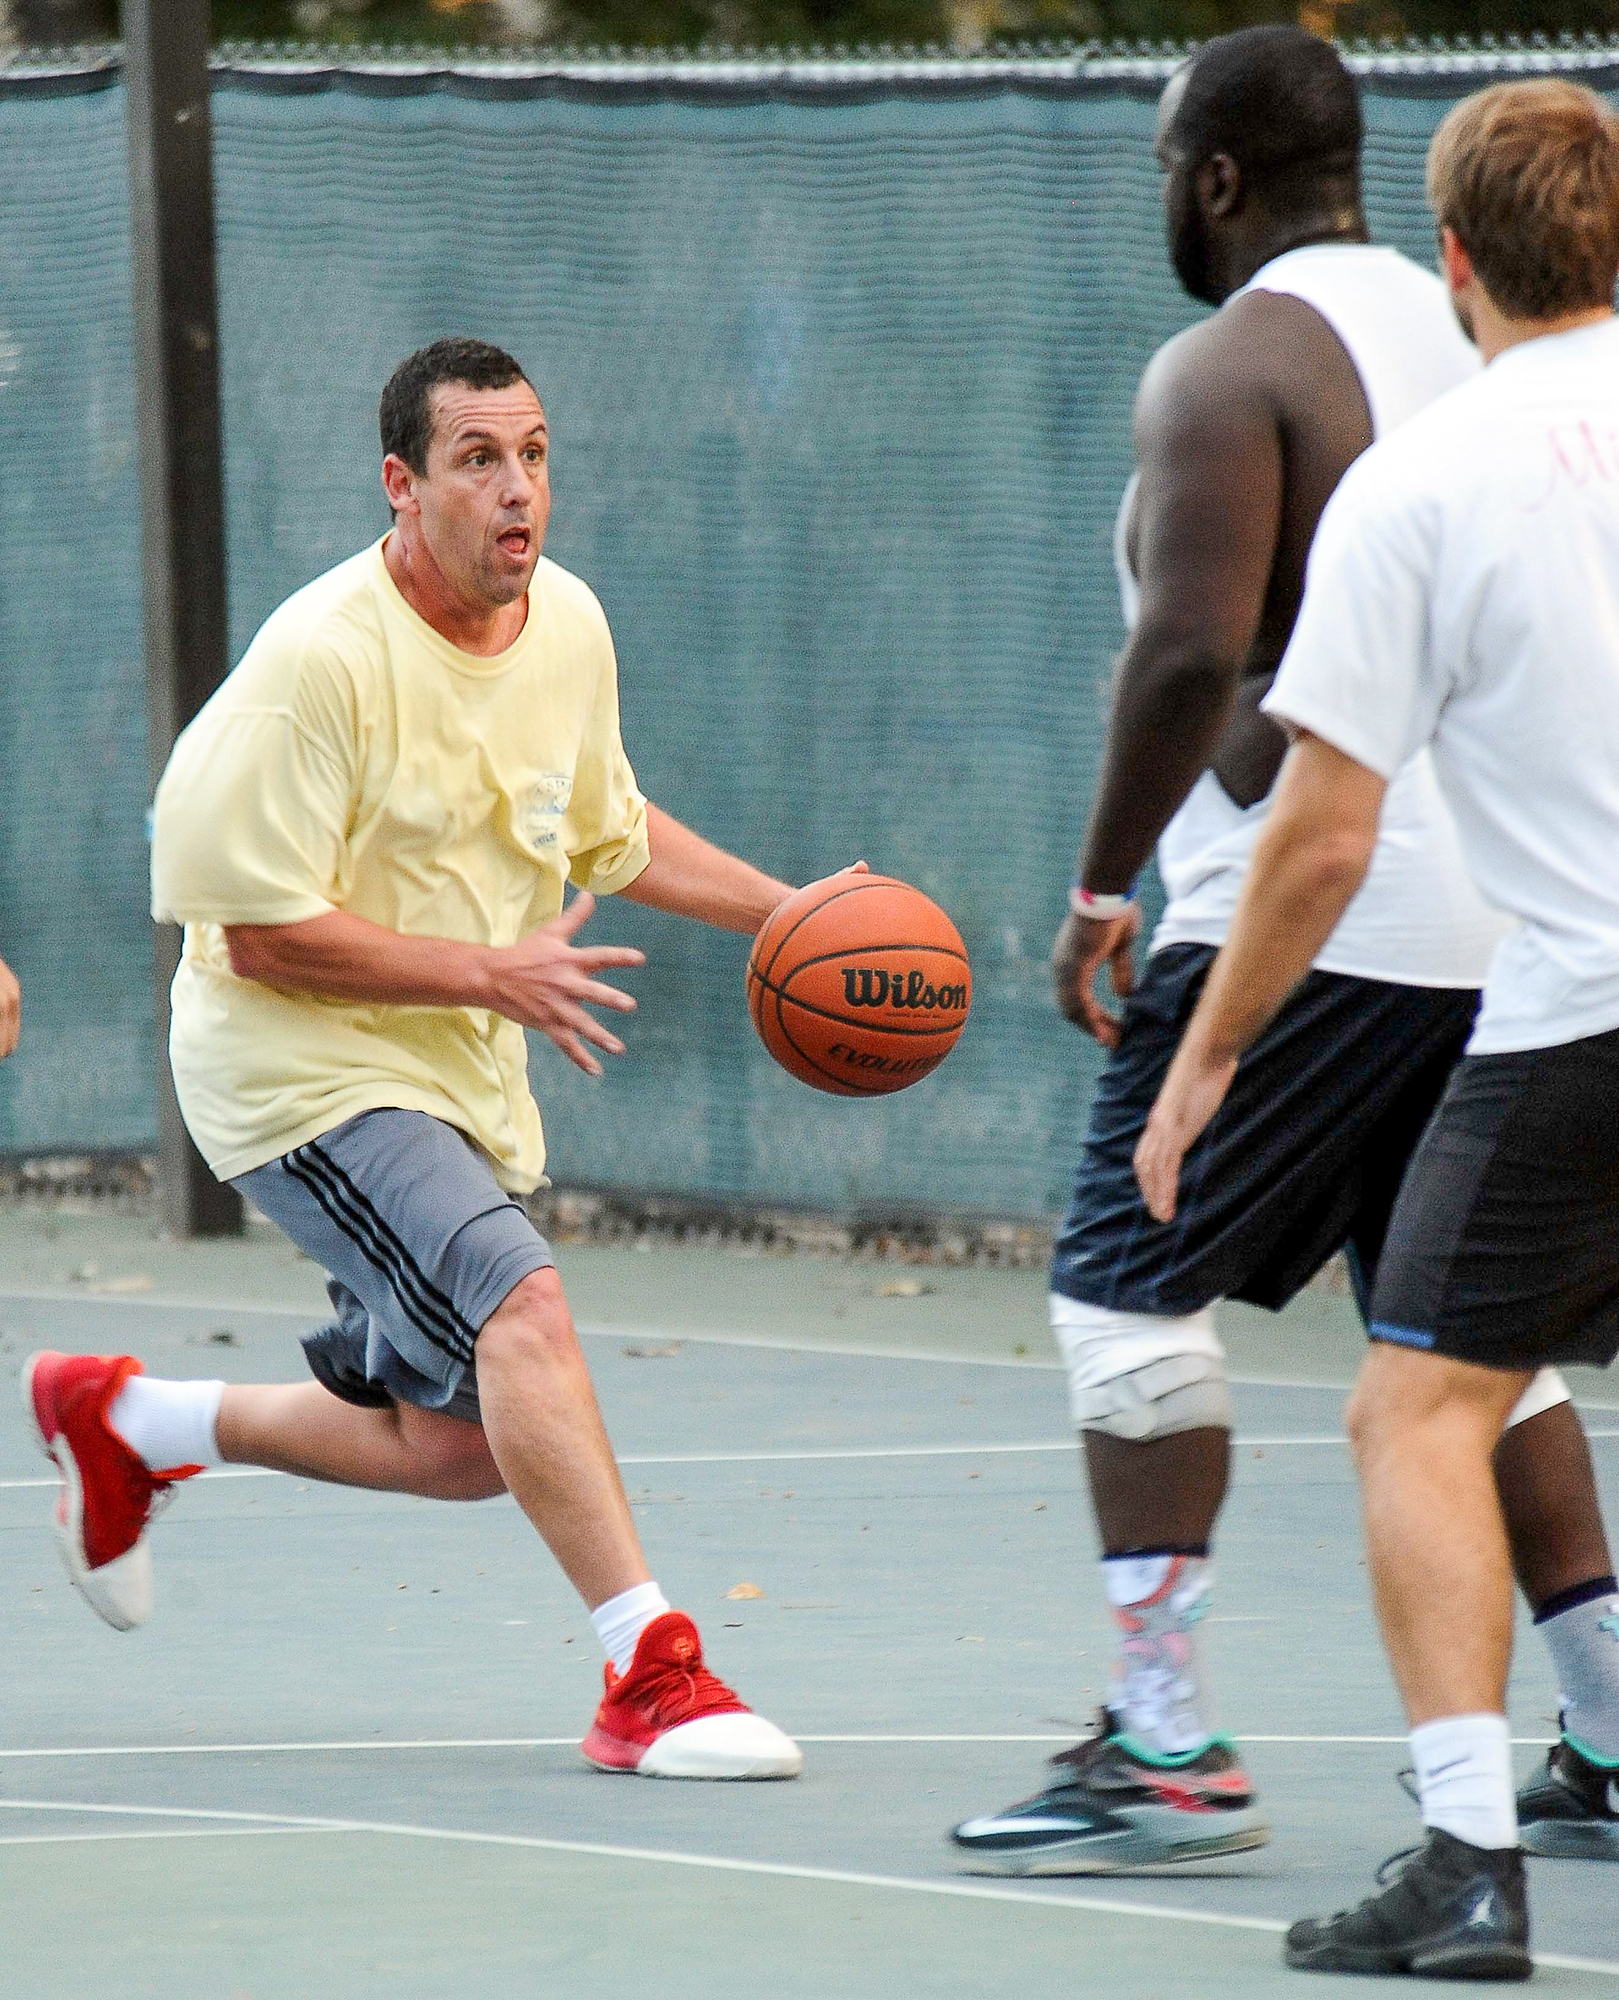 EXCLUSIVE: Comedian Adam Sandler shows off some pretty fancy ball handling skills for a 51 year old as he plays a pickup game of Basketball in a park in Santa Monica, Ca